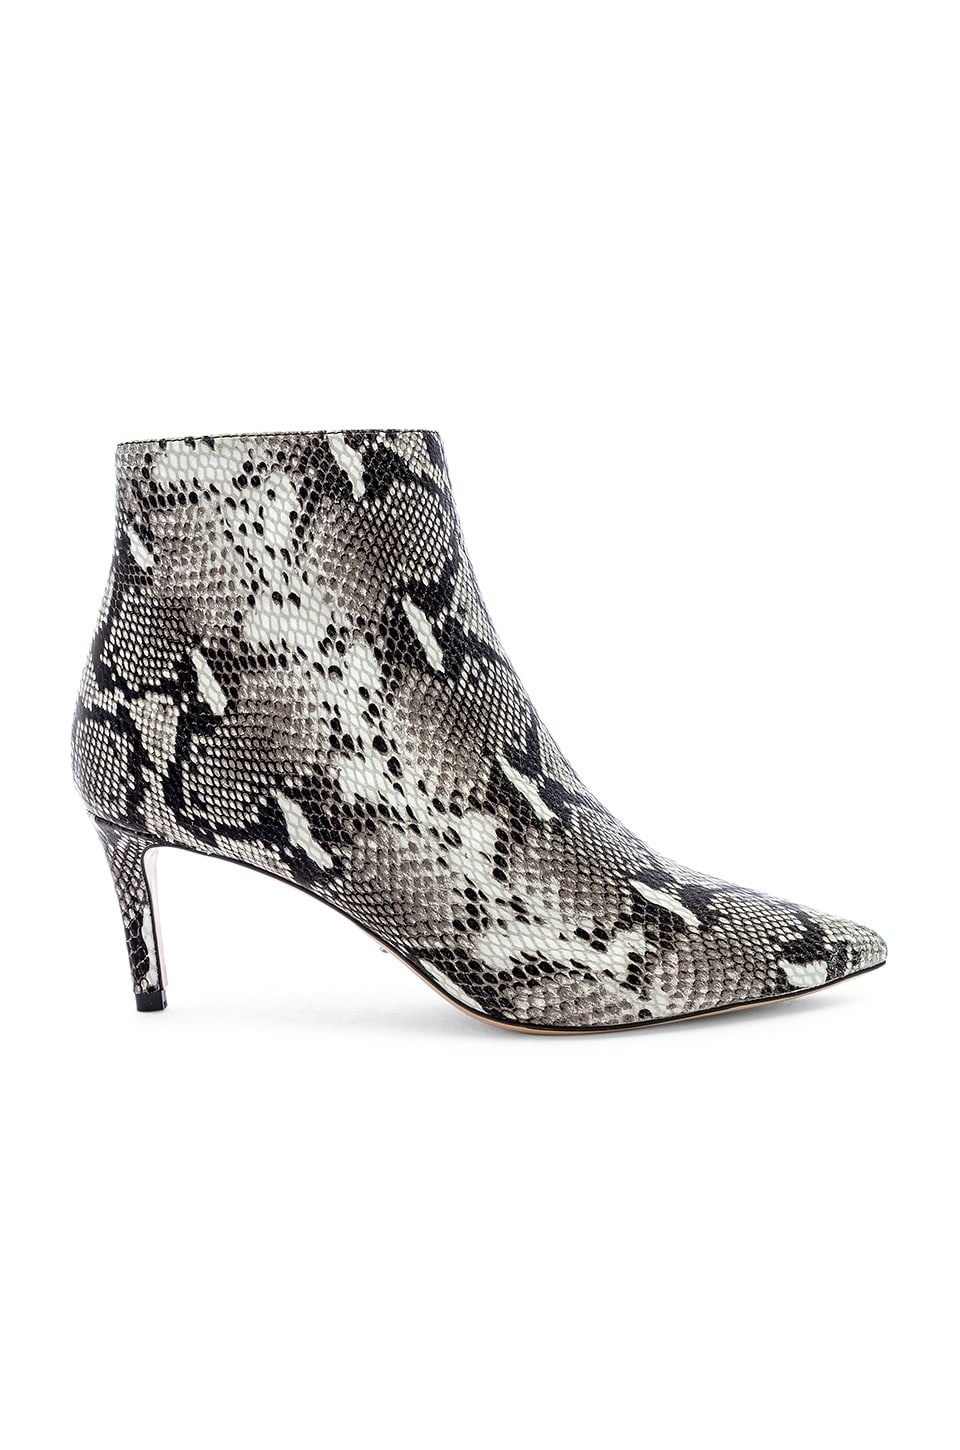 Tony Bianco Gessy Bootie in Natural Snake